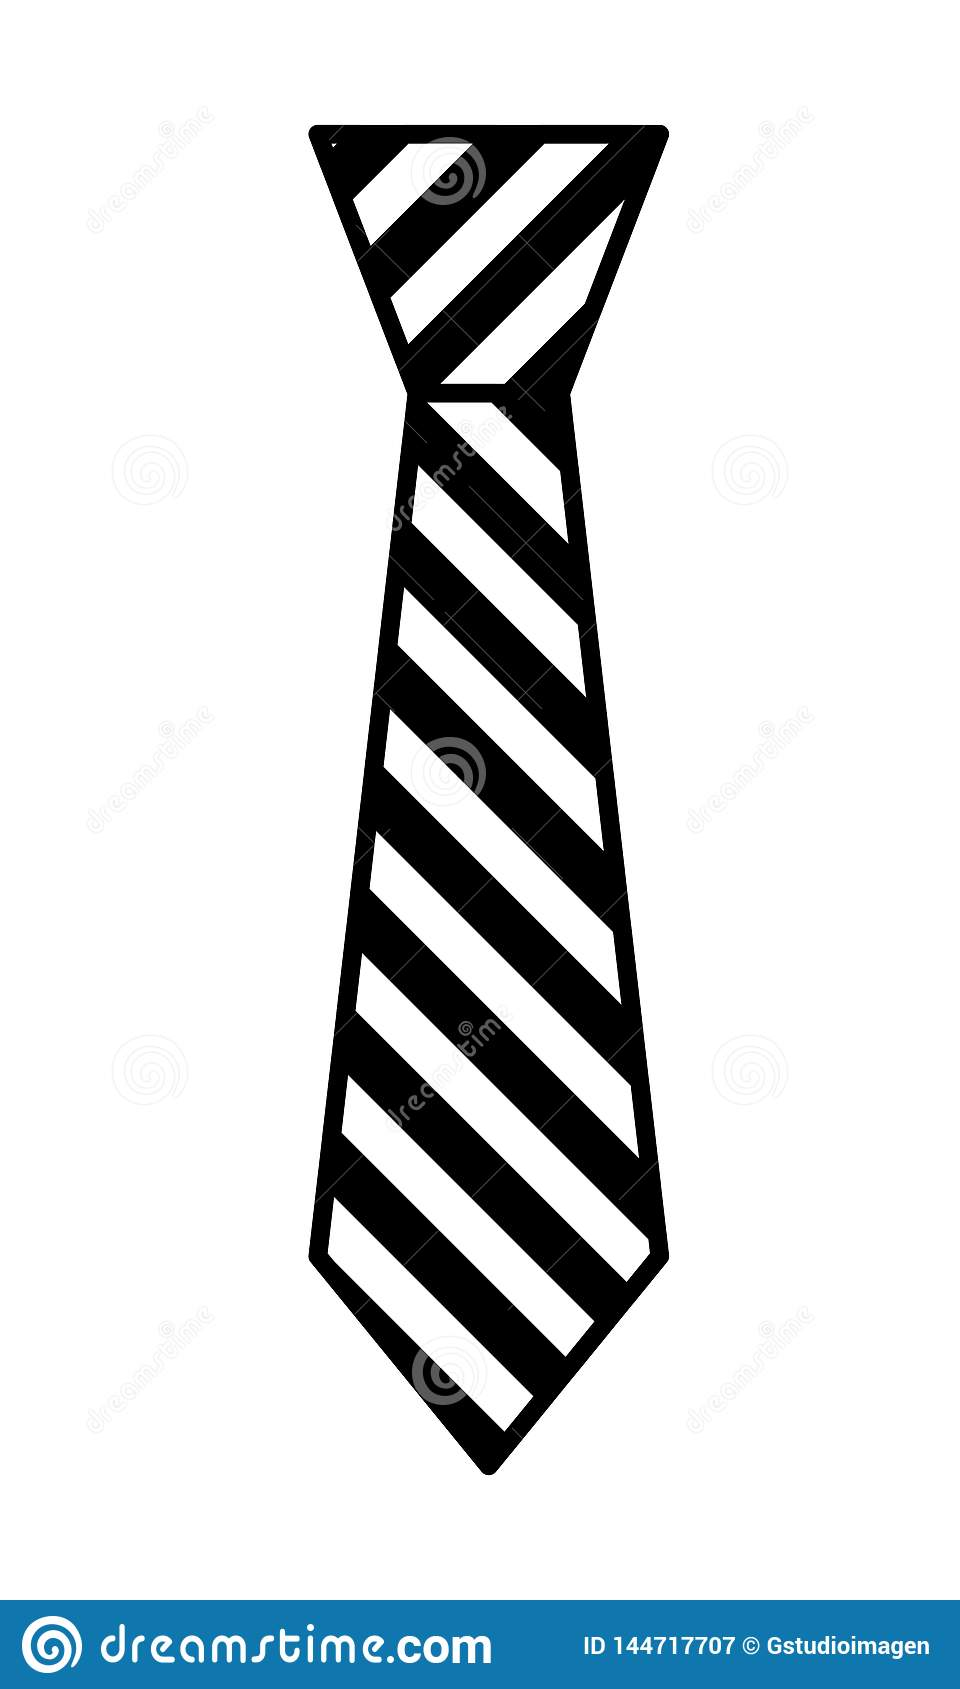 Tie accessory for men